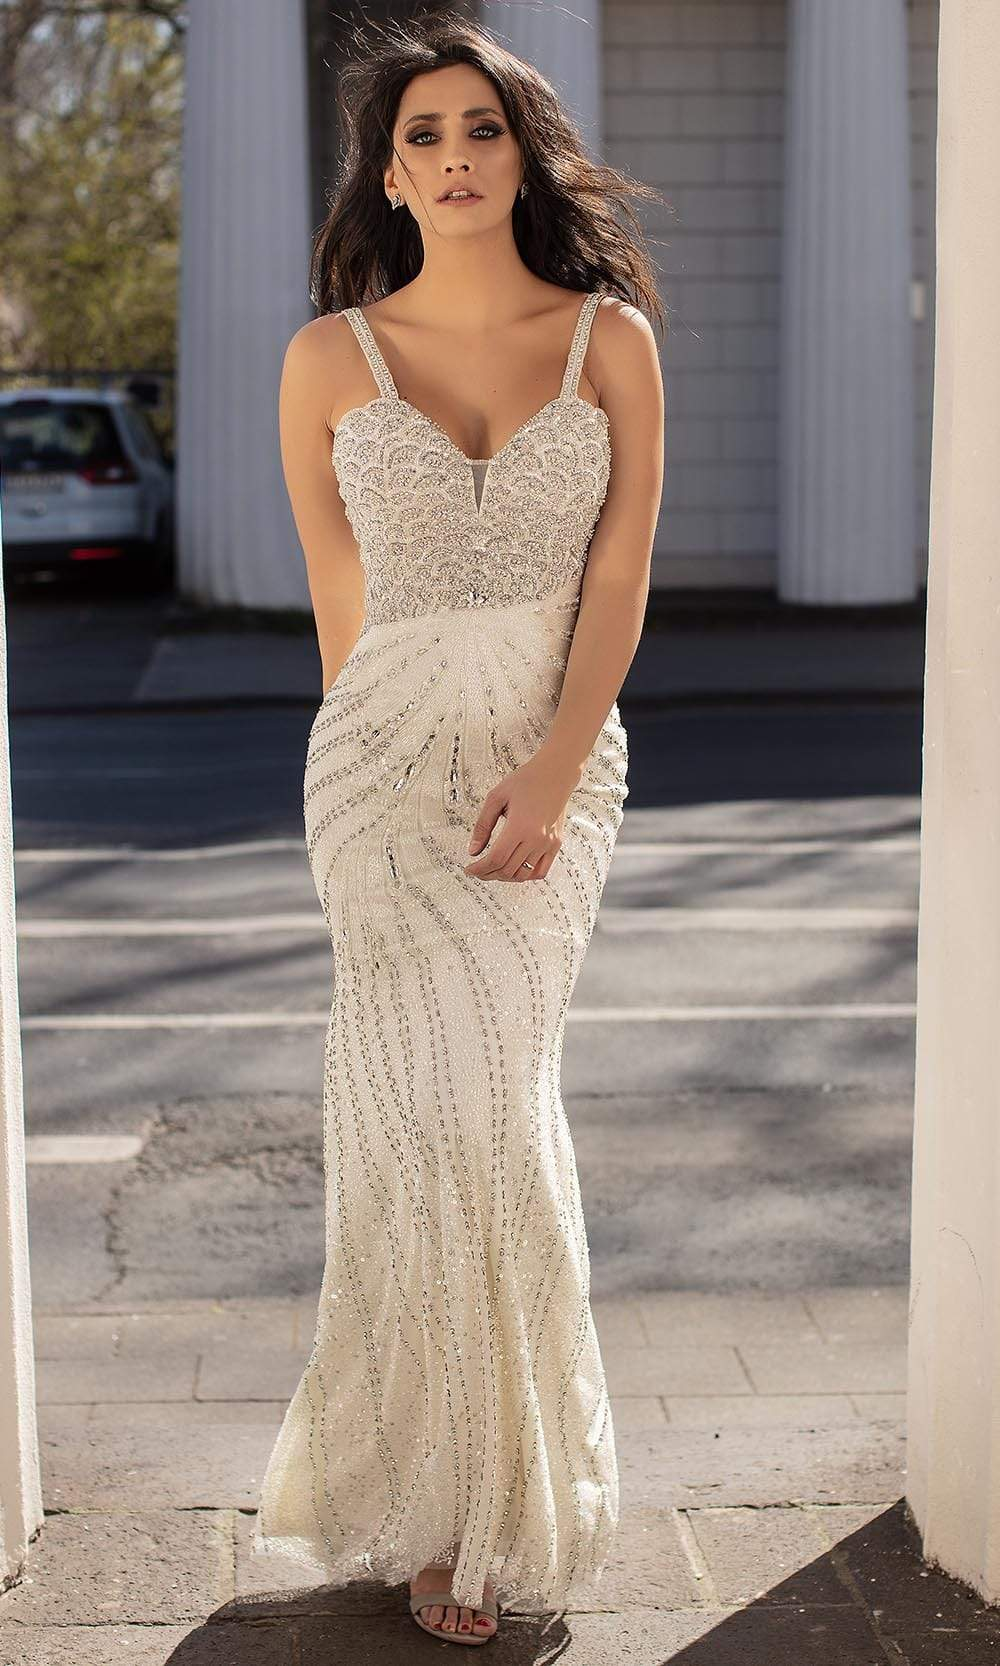 Chic and Holland - HF1560 Beaded Scallop Motif Long Dress from Chic and Holland